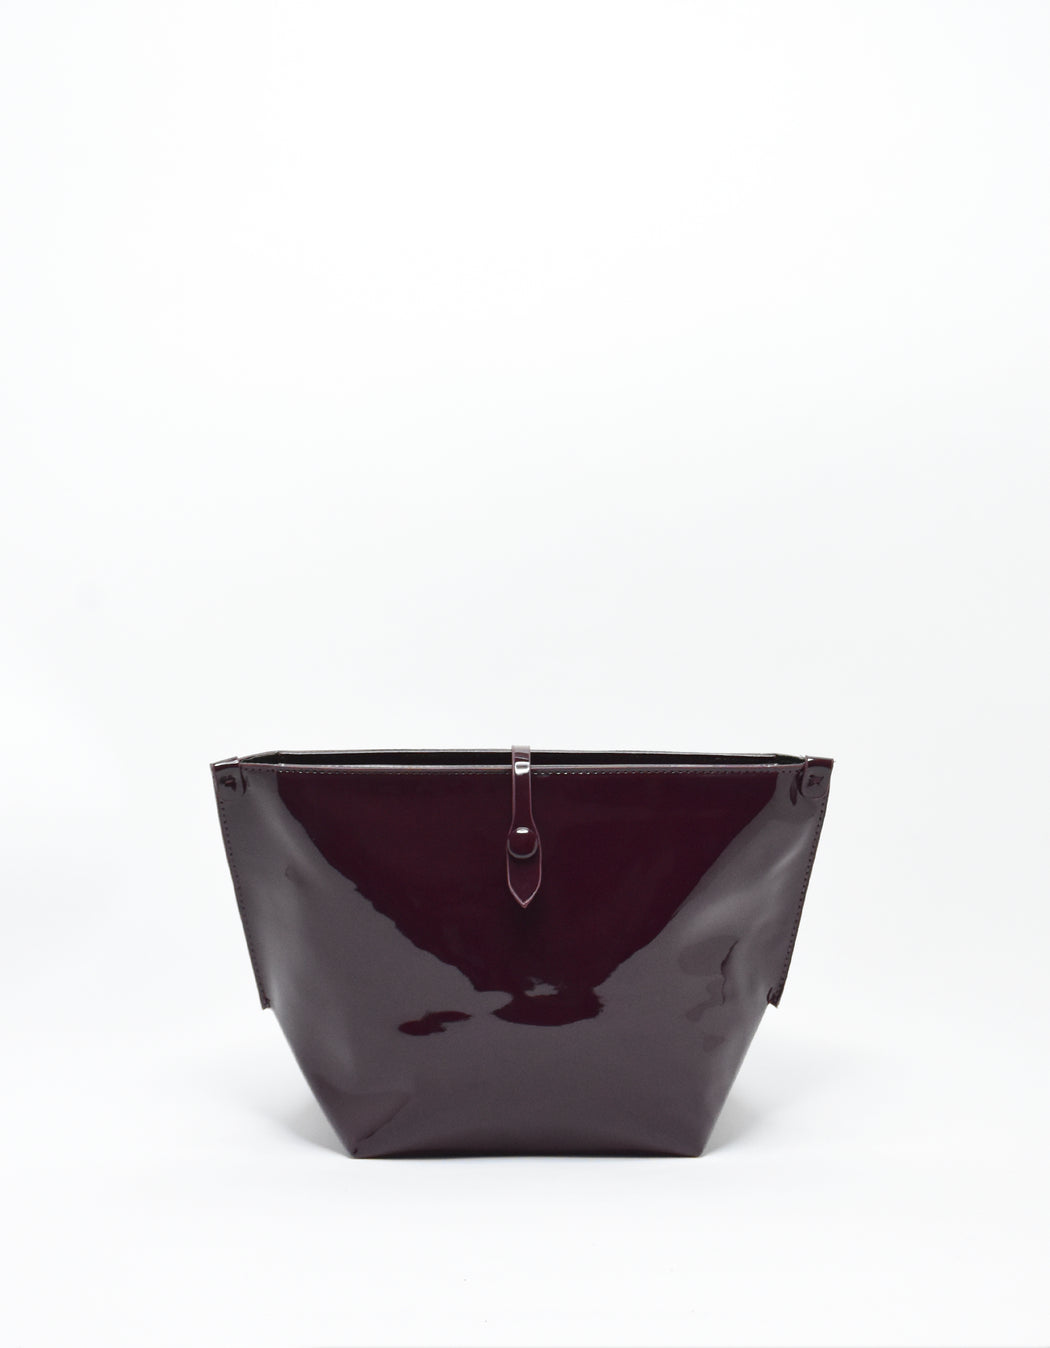 SOBRIQUET PATENT LARGE MAKE UP POUCH OXBLOOD